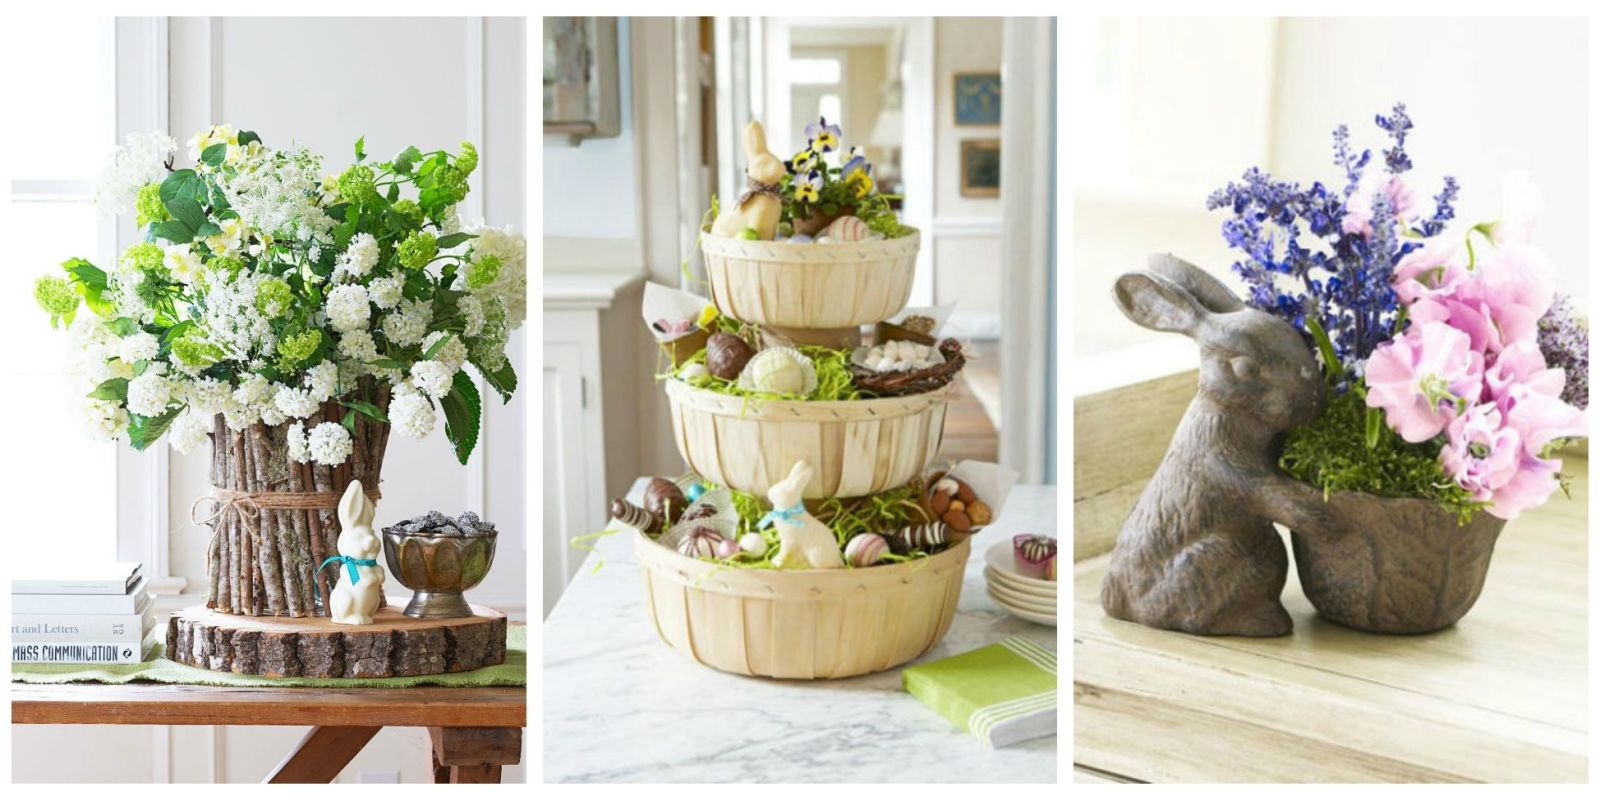 70 diy easter decorations ideas for homemade easter